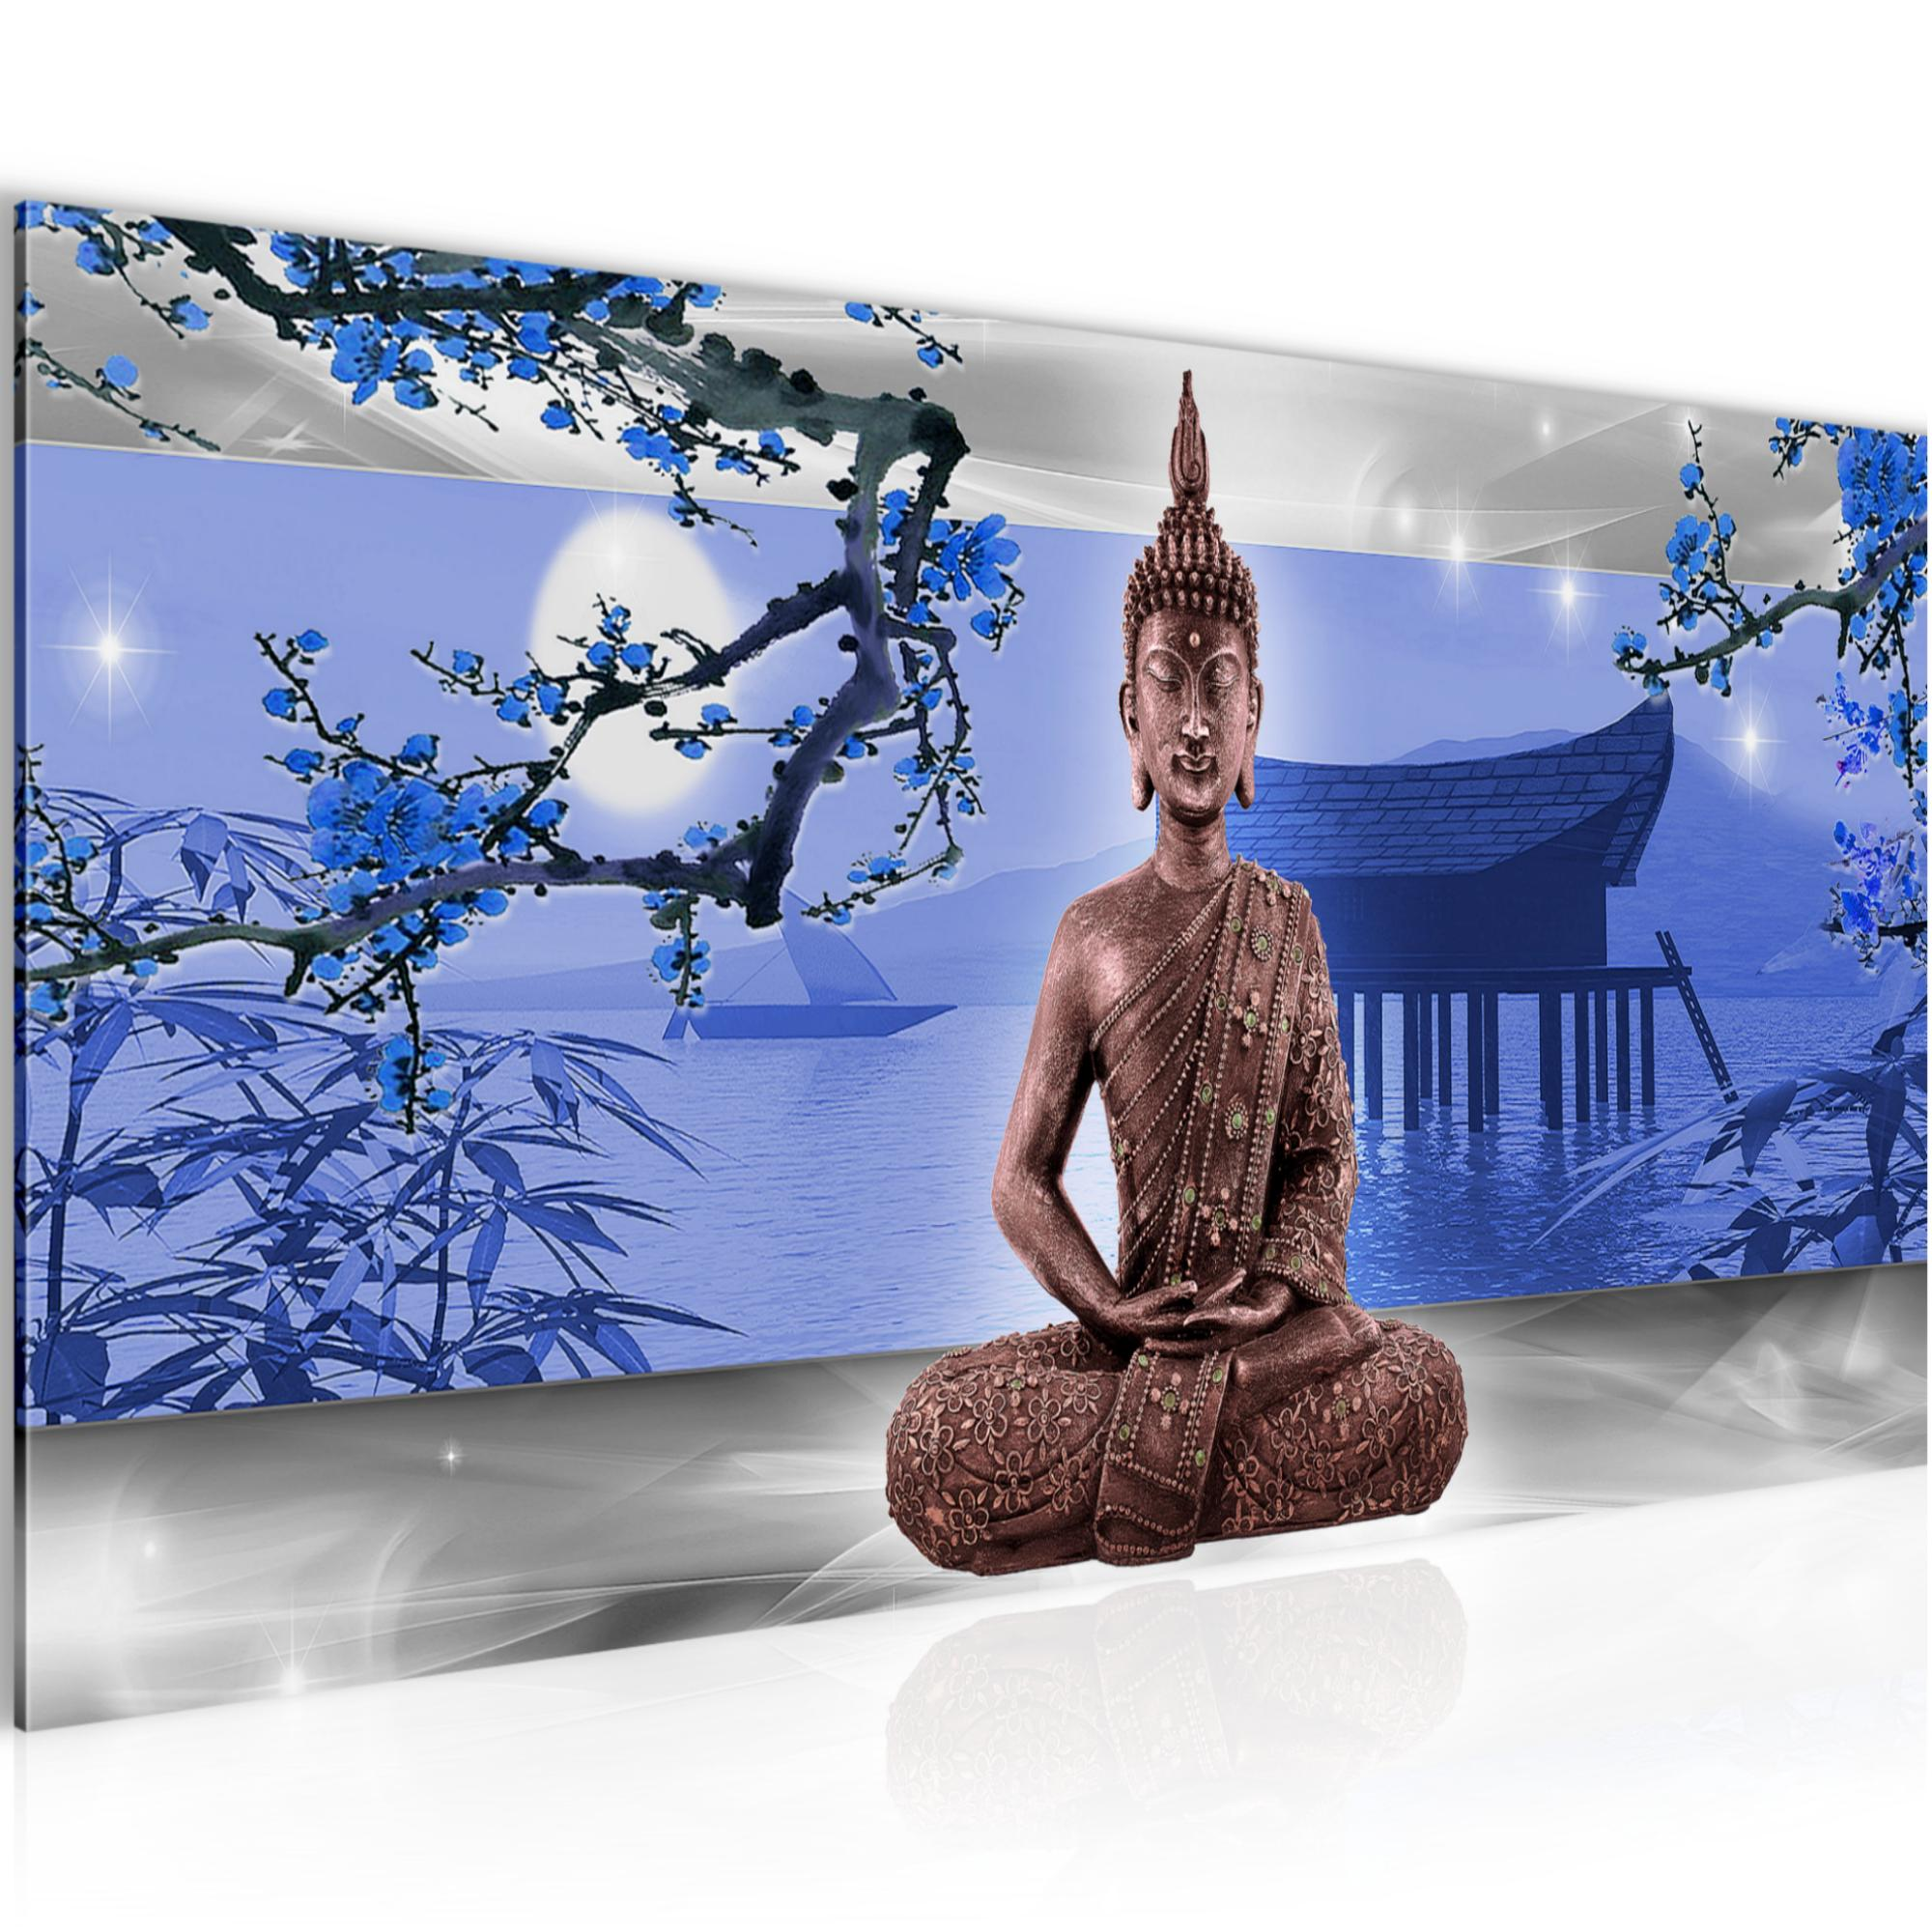 buddha feng shui bild kunstdruck auf vlies leinwand xxl dekoration 504912p. Black Bedroom Furniture Sets. Home Design Ideas